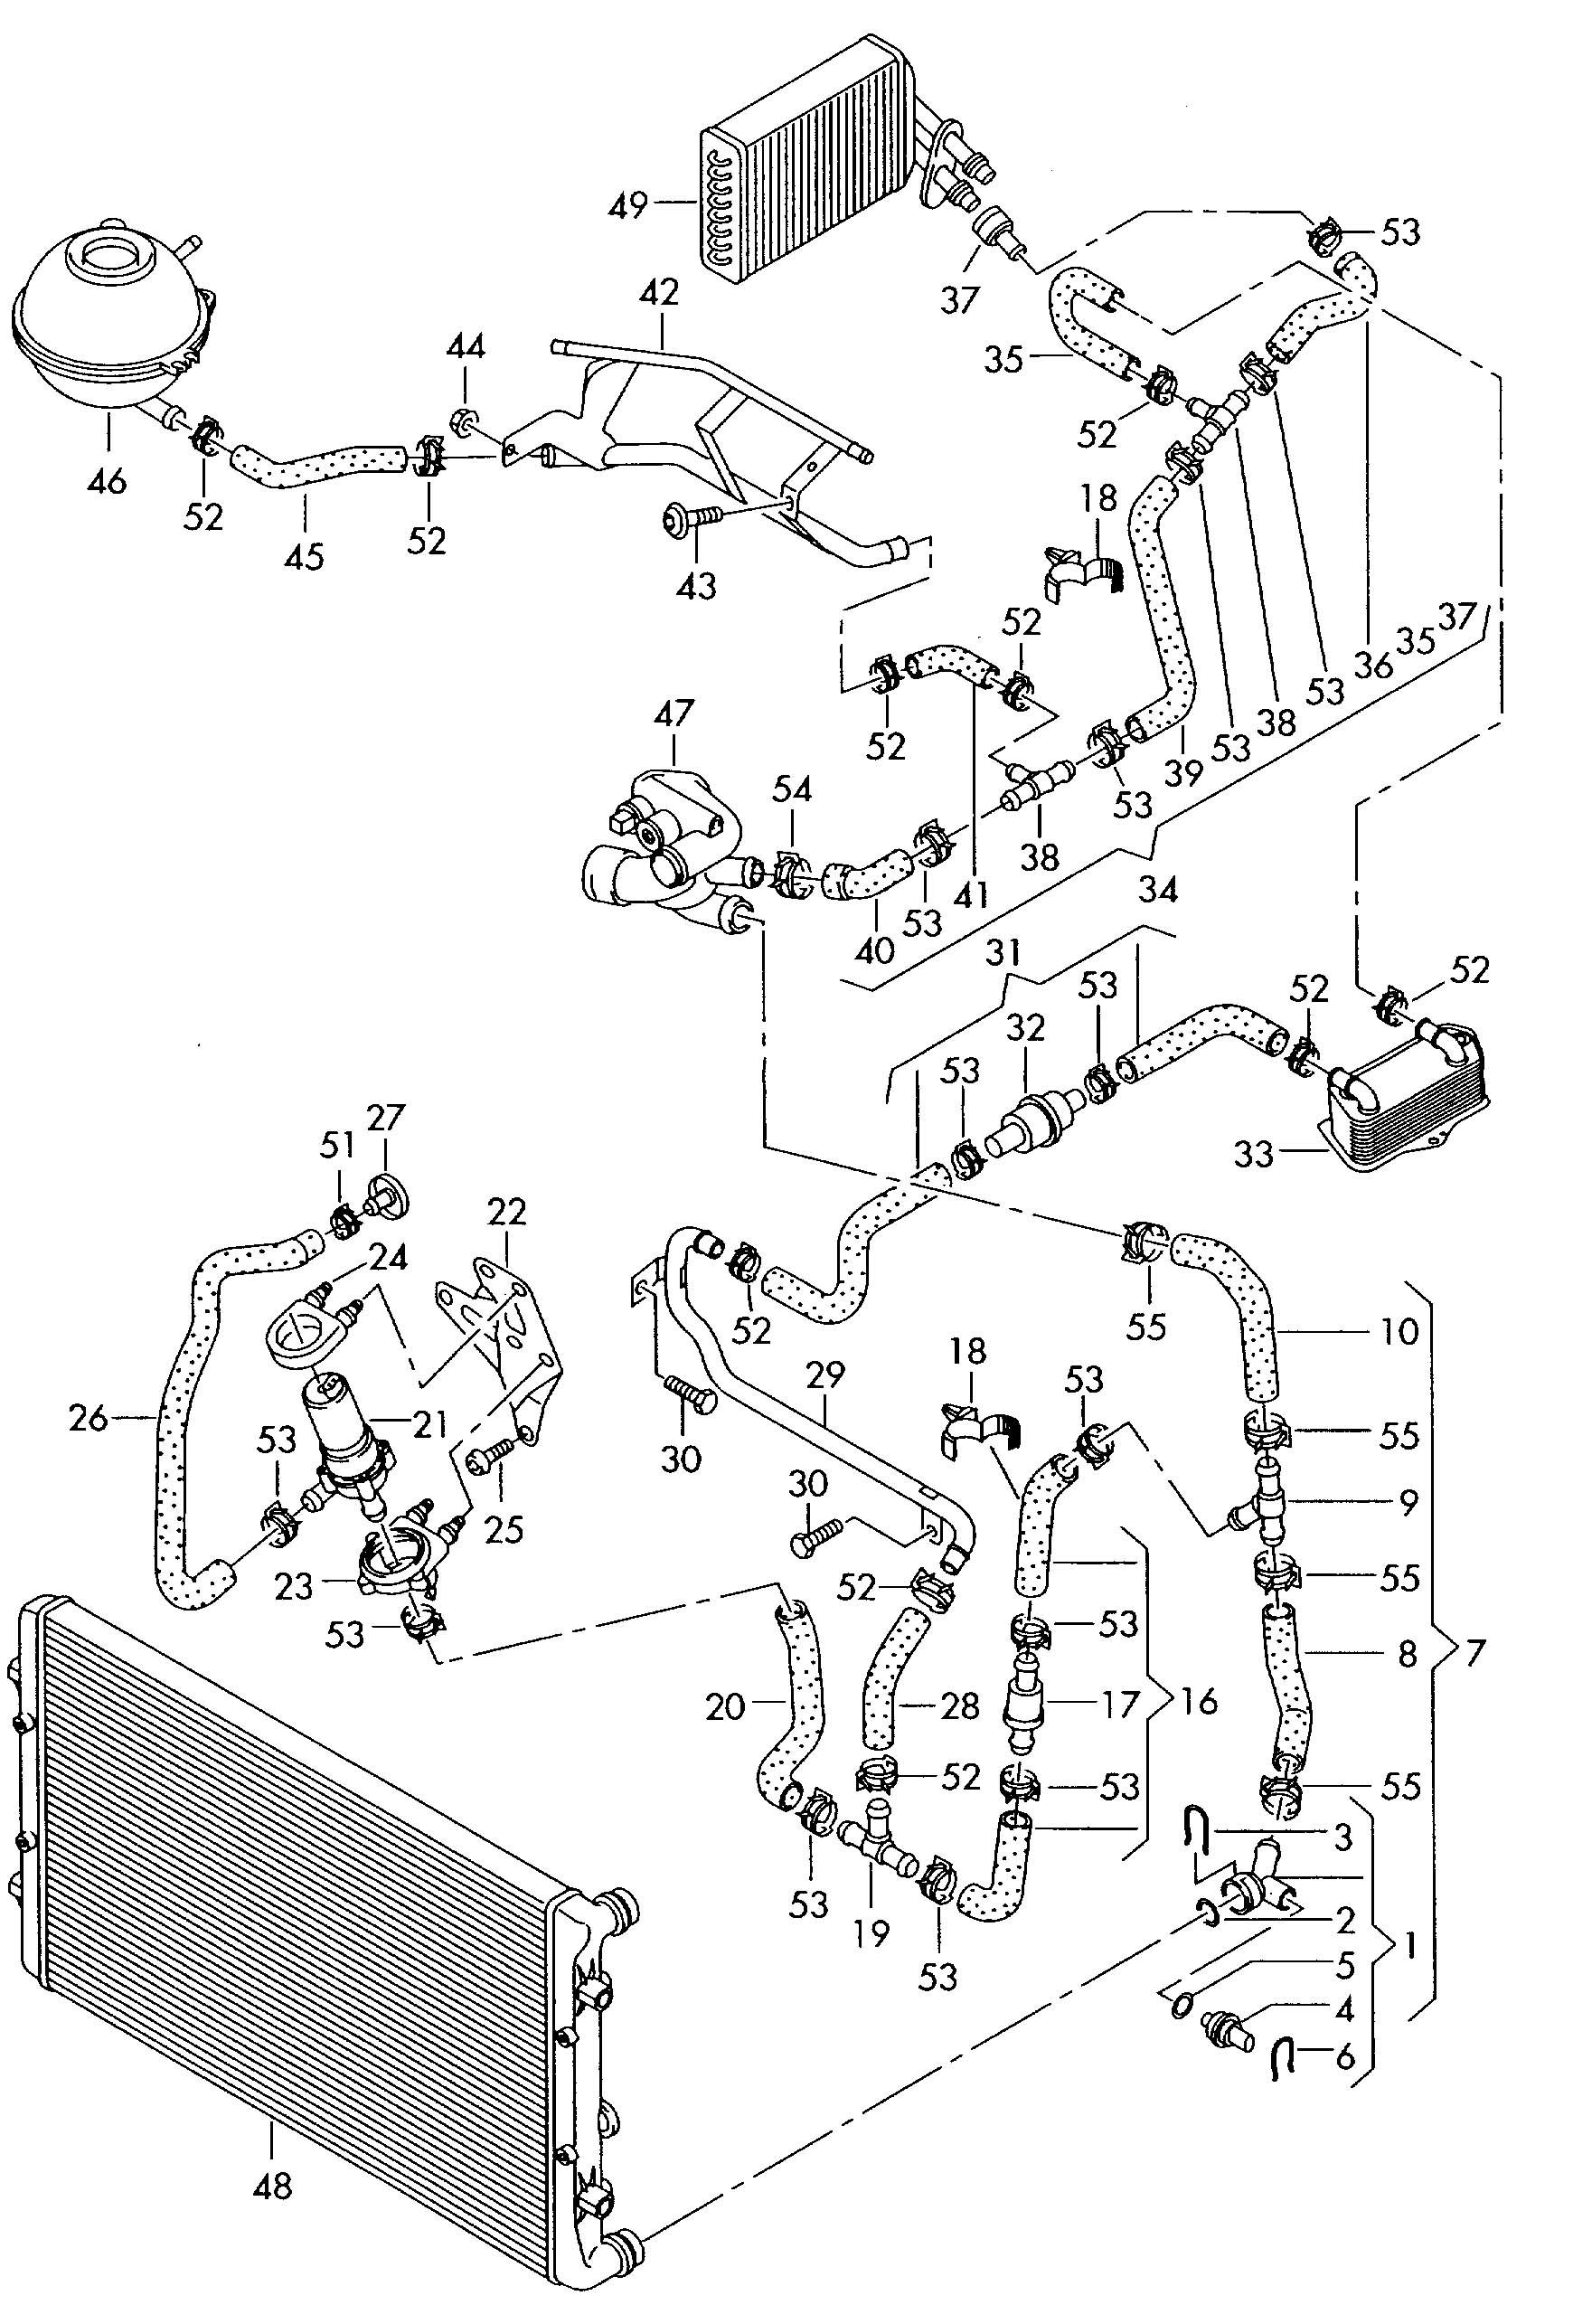 small resolution of audi a3 cooling system diagram audi audi a3 audi cooling systemaudi a3 cooling system